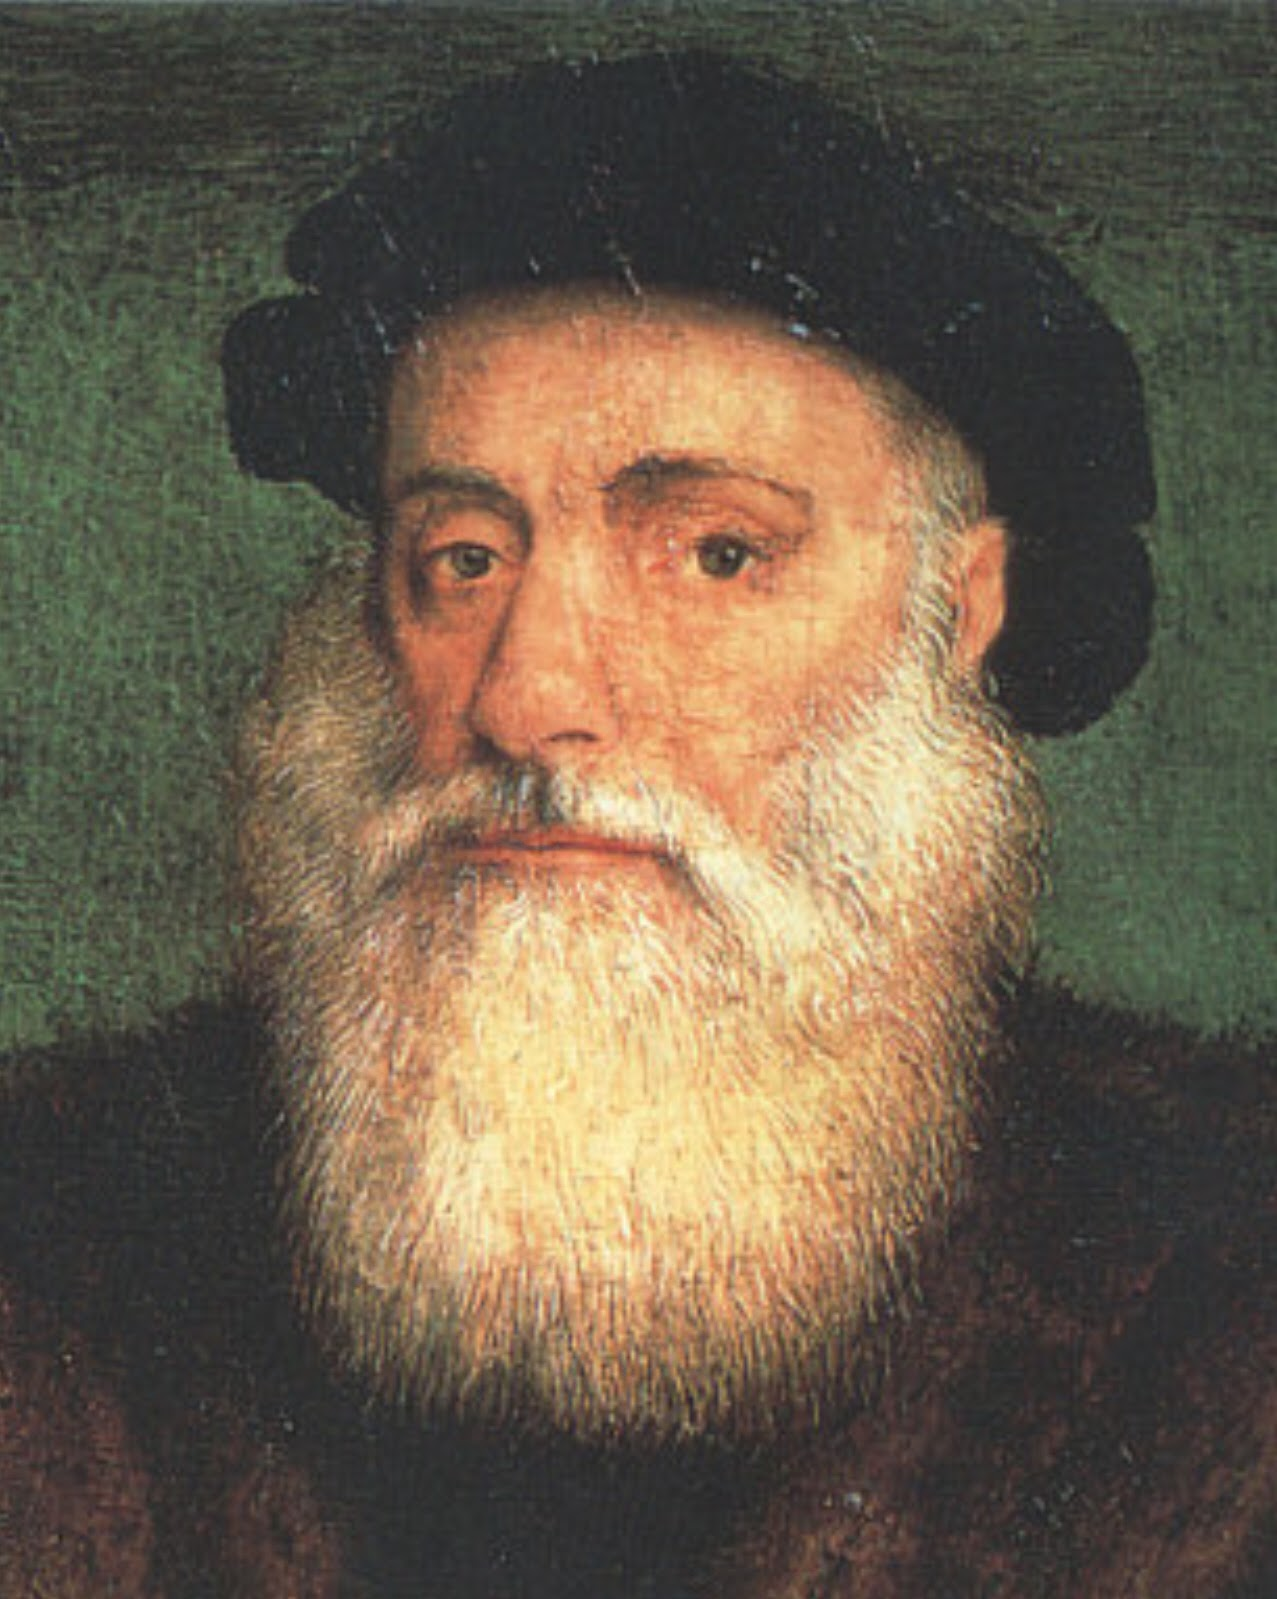 vasco da gama s journey from portugal Vasco da gama almost single handily altered portugal's status from a minor europe state into the most respected of sea faring nations which flourished as the vast wealth from trade flooded through lisbon, this was portugal's golden era.